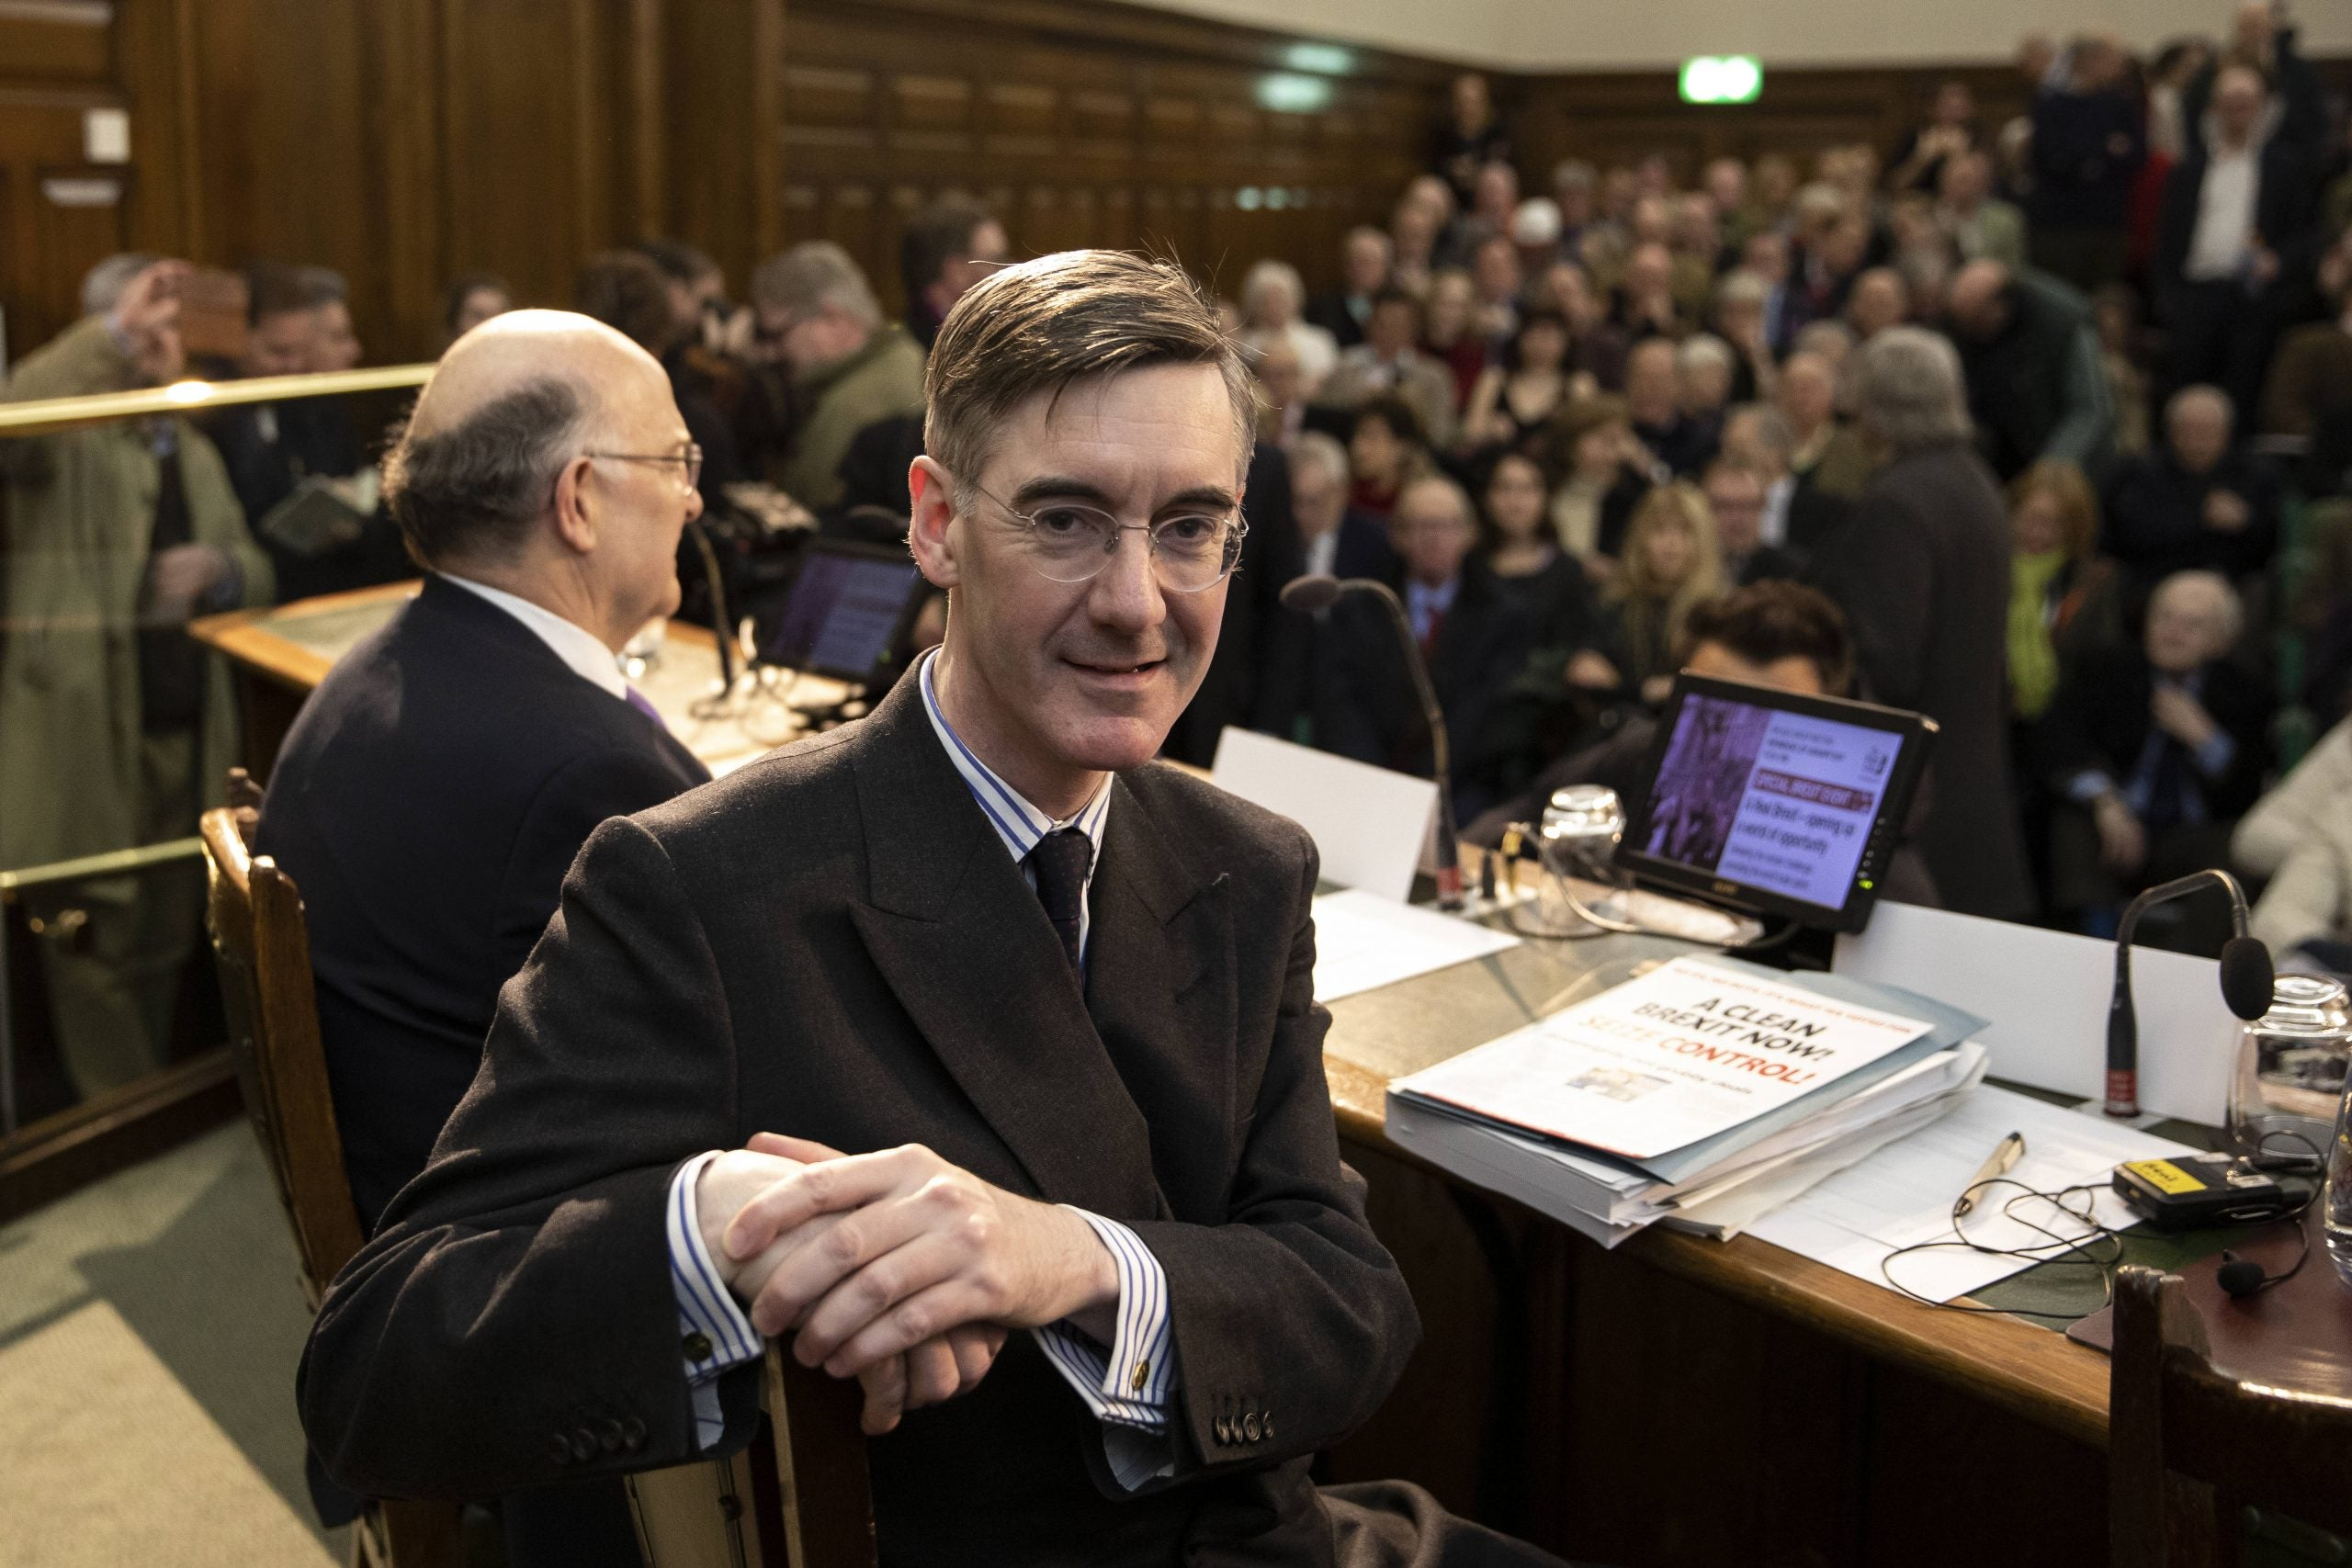 Michael Burleigh's Diary: Rees-Mogg at the Palladium, China's exiled novelists – and why I'll never vote Tory again